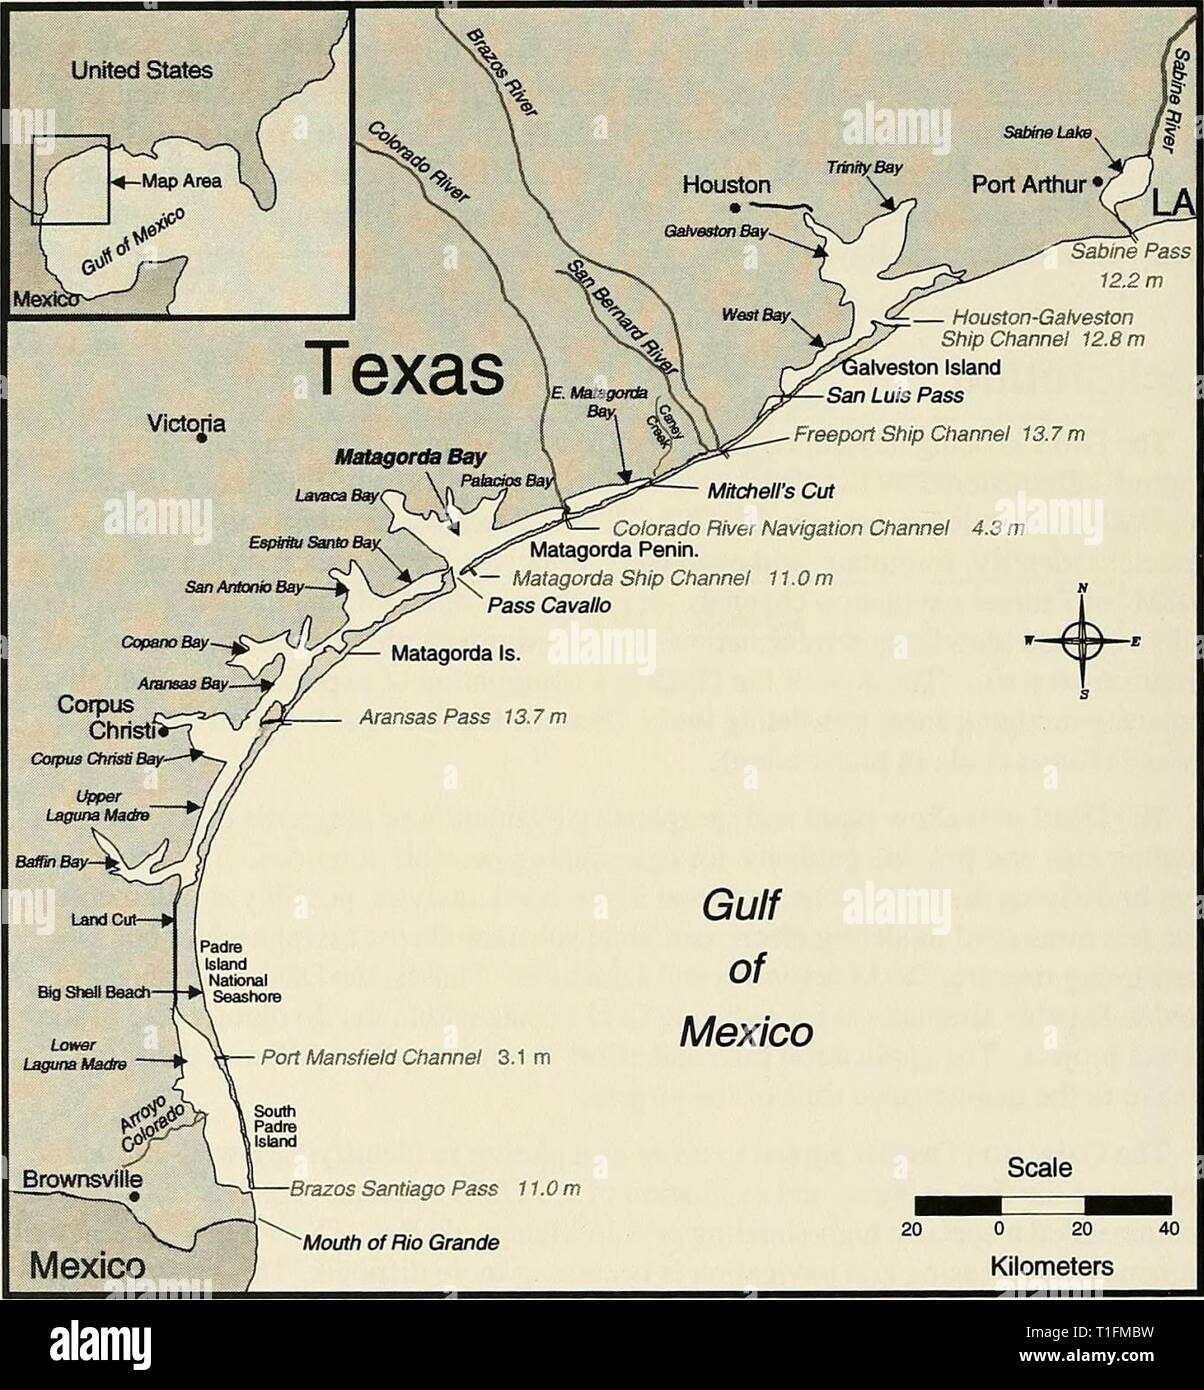 DMS  Diagnostic Modeling System DMS : Diagnostic Modeling System  dmsdiagnosticmod00krau Year: 2000  Matagorda Bay Matagorda Bay is located in the central region of the Texas coast (Figure 1) and is one of seven major estuarine systems of the State, if Matagorda Bay and East Matagorda Bay are considered as part of the same system. Several smaller bays, notably Lavaca Bay, Carancahua Bay, Tres Palacios Bay, and Espiritu Santo Bay directly connect to Matagorda Bay. Surface area of Matagorda Bay is estimated at 425 square miles' (Ward 1982), making it second in size to Galveston Bay of the Texas  - Stock Image